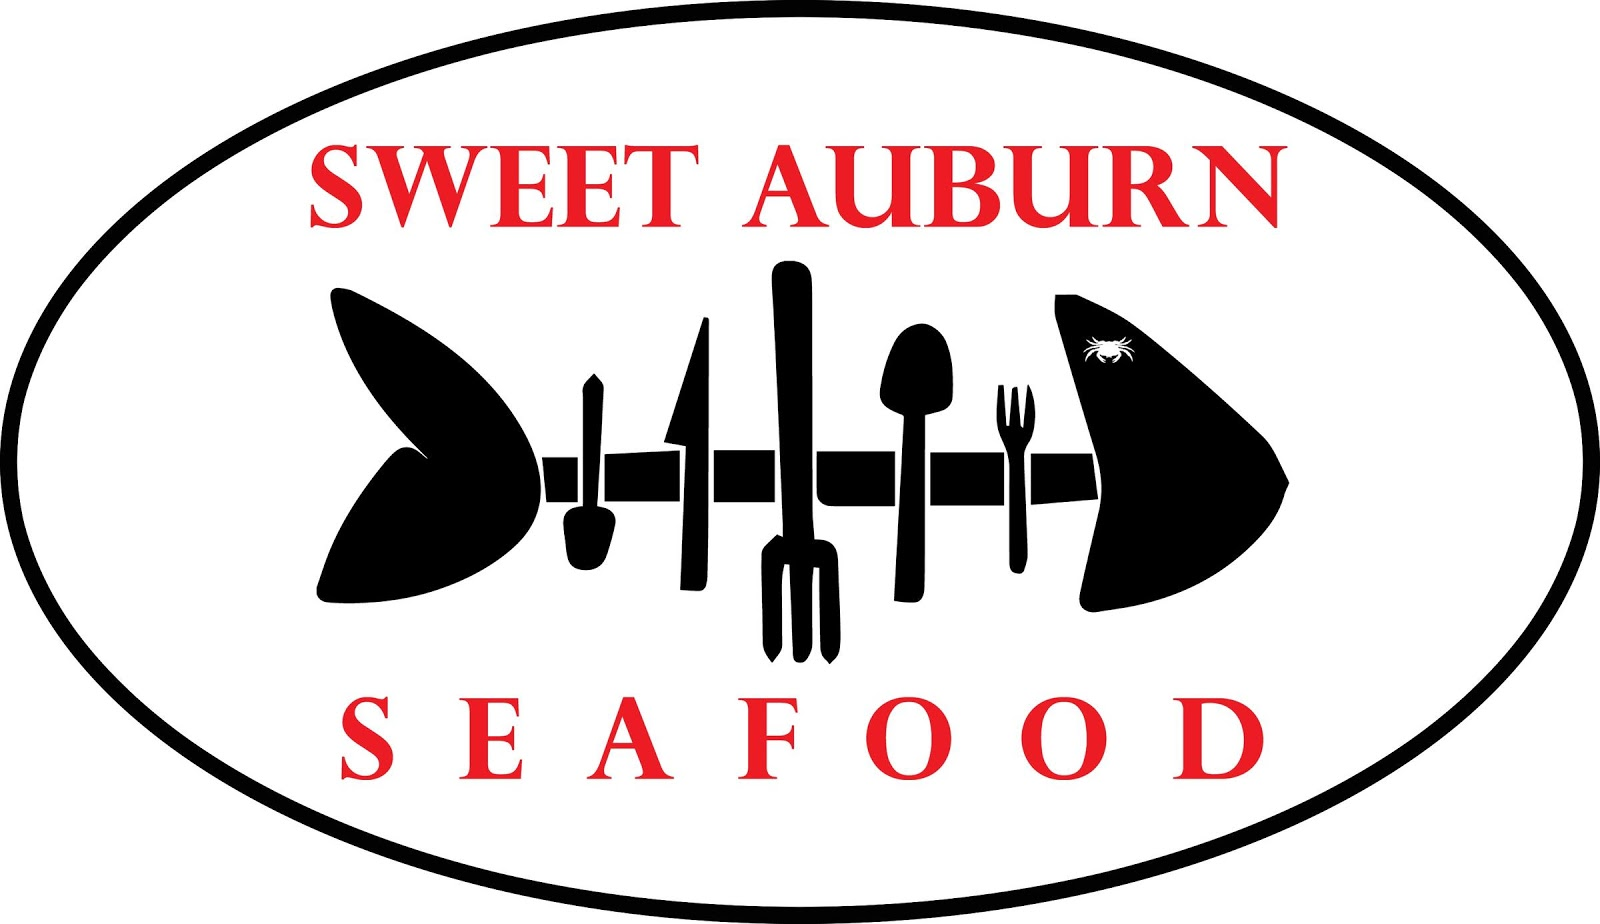 https://www.wclk.com/sites/wclk/files/styles/x_large/public/201611/sweet_auburn_high_resolution_logo.jpg